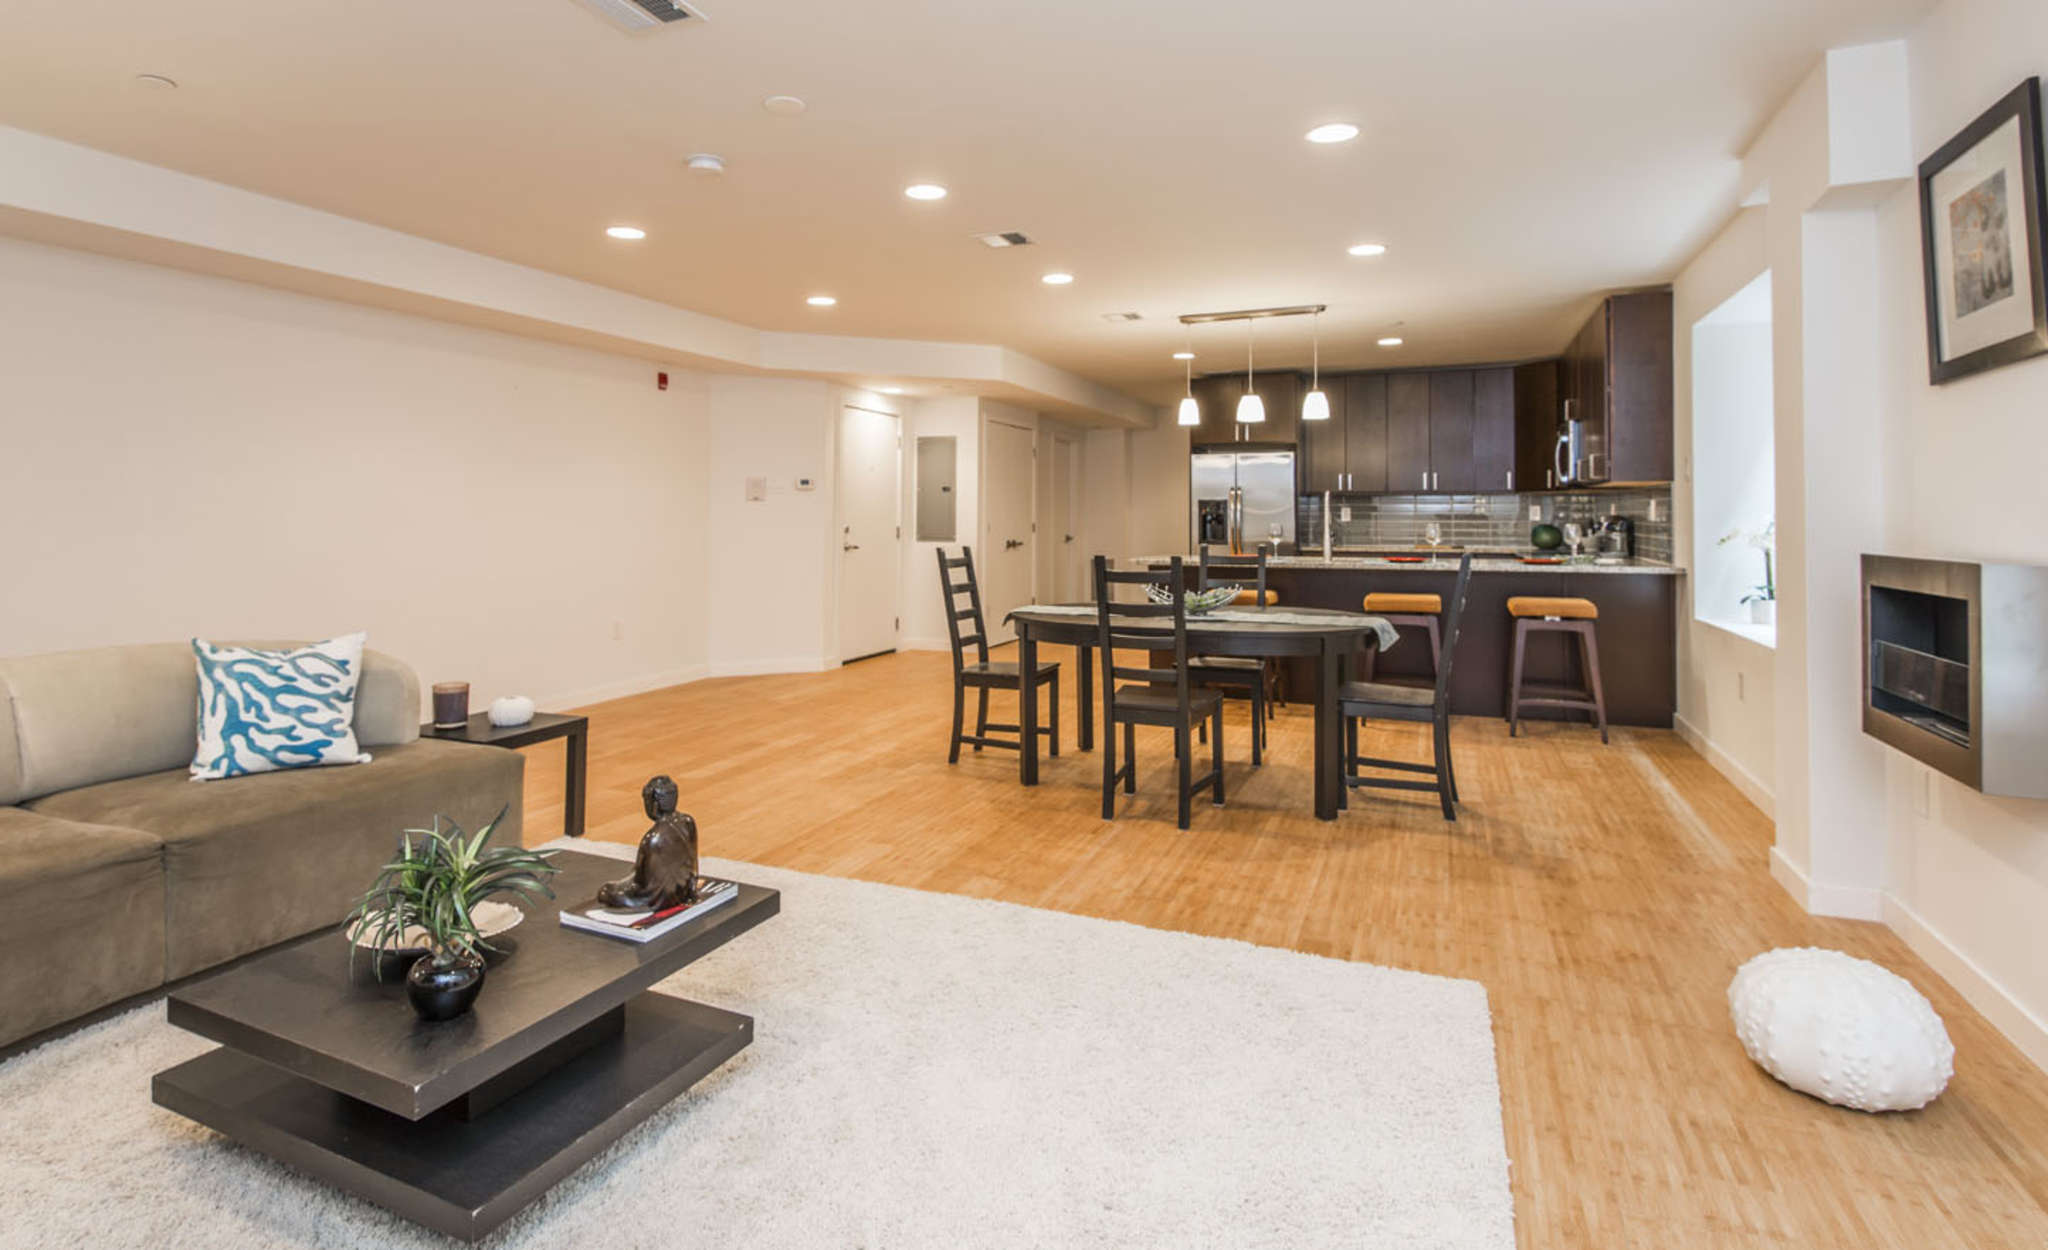 The main living space of the three-level unit at Falcon Condominiums in the 3800 block of Terrace Street in Manayunk.